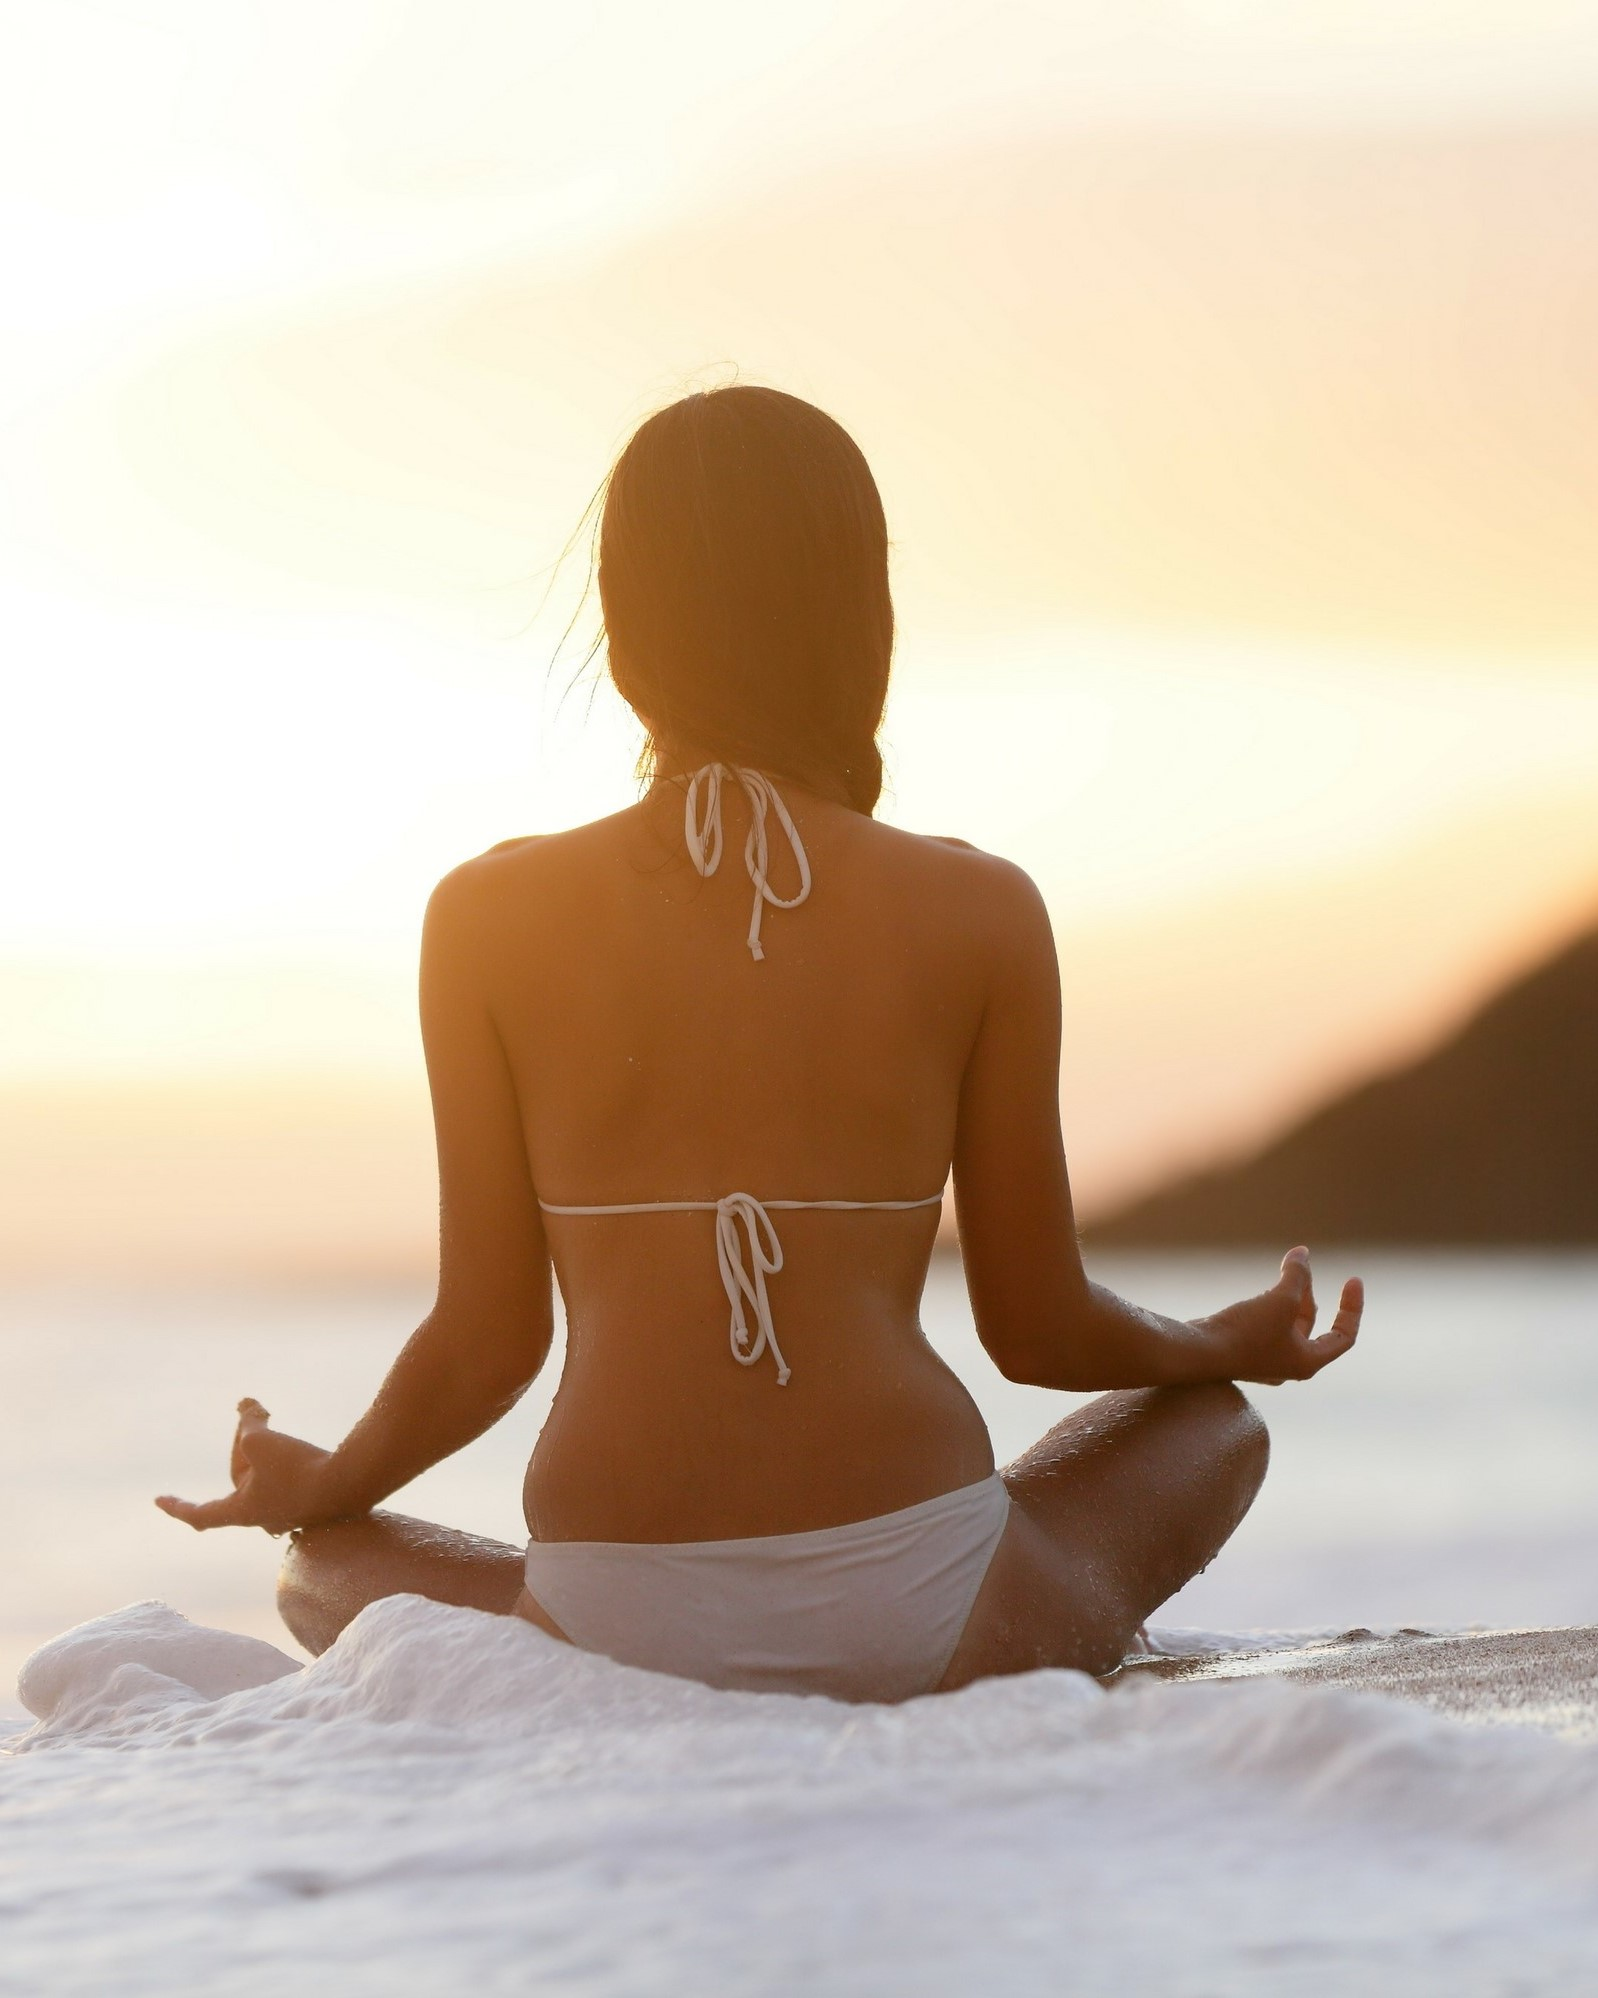 Meditation - Meditation can significantly improve and maintain mental and emotional wellbeing.